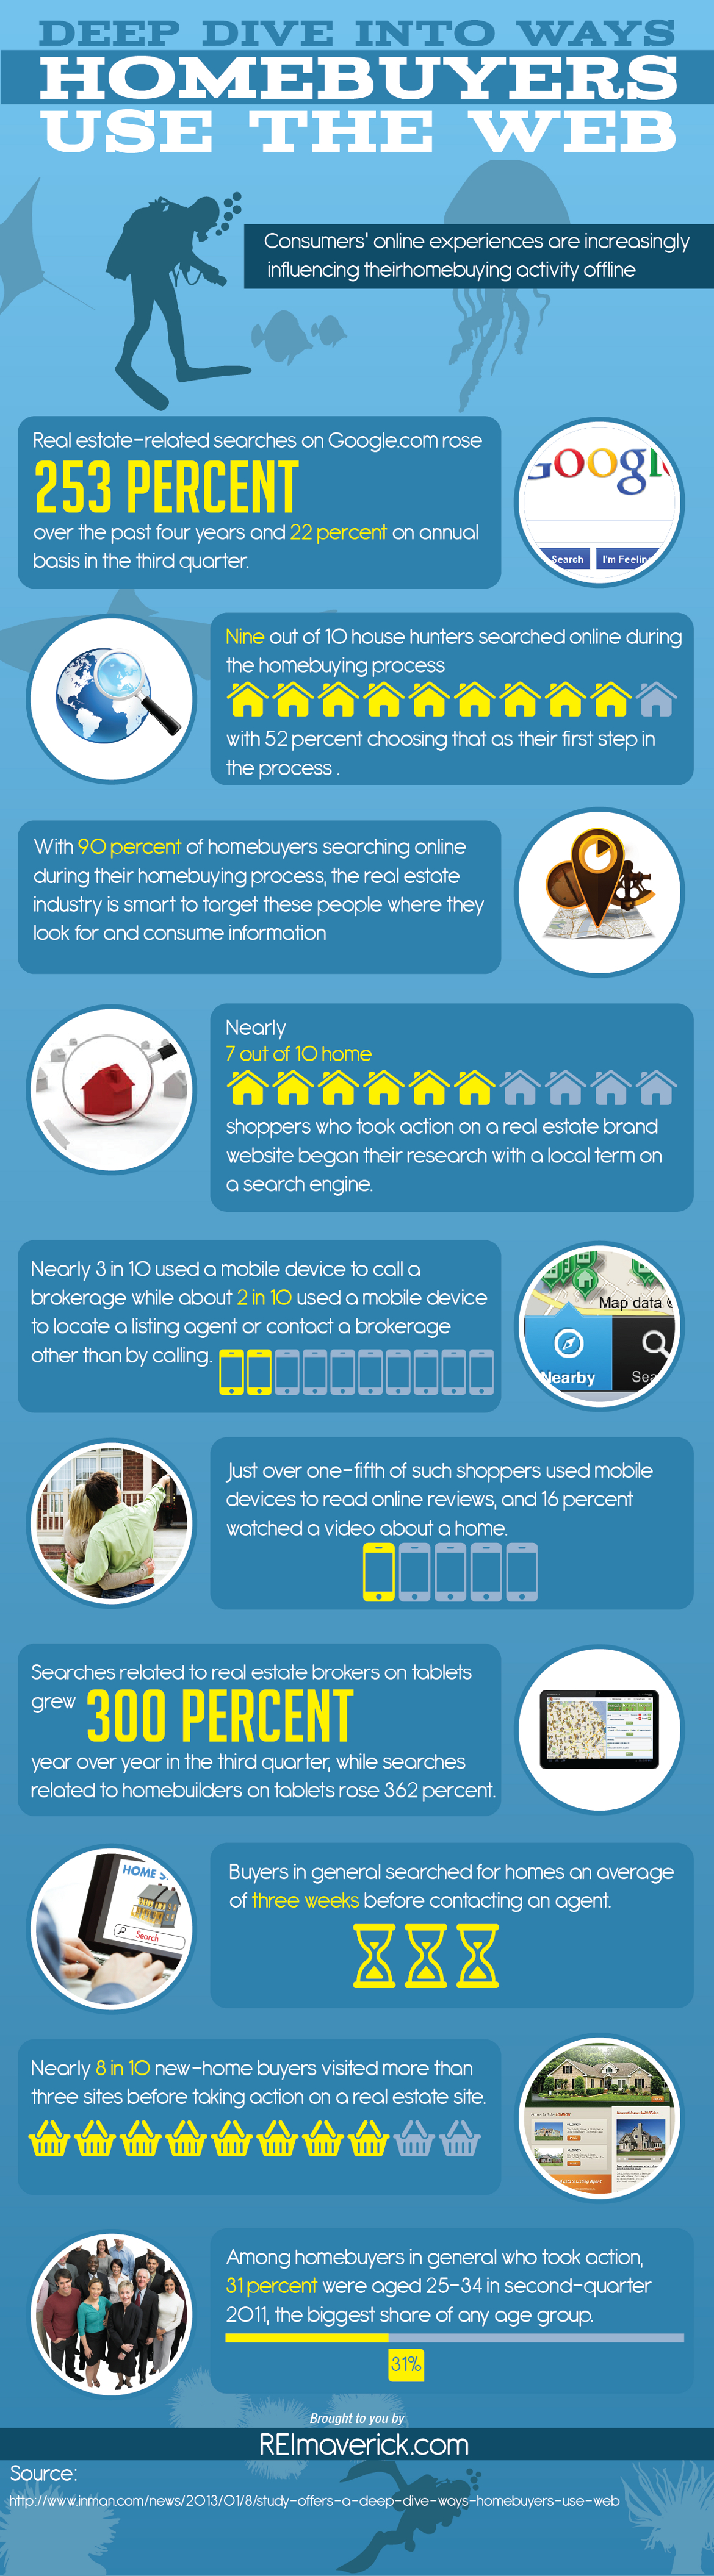 How Homebuyers Use the Internet